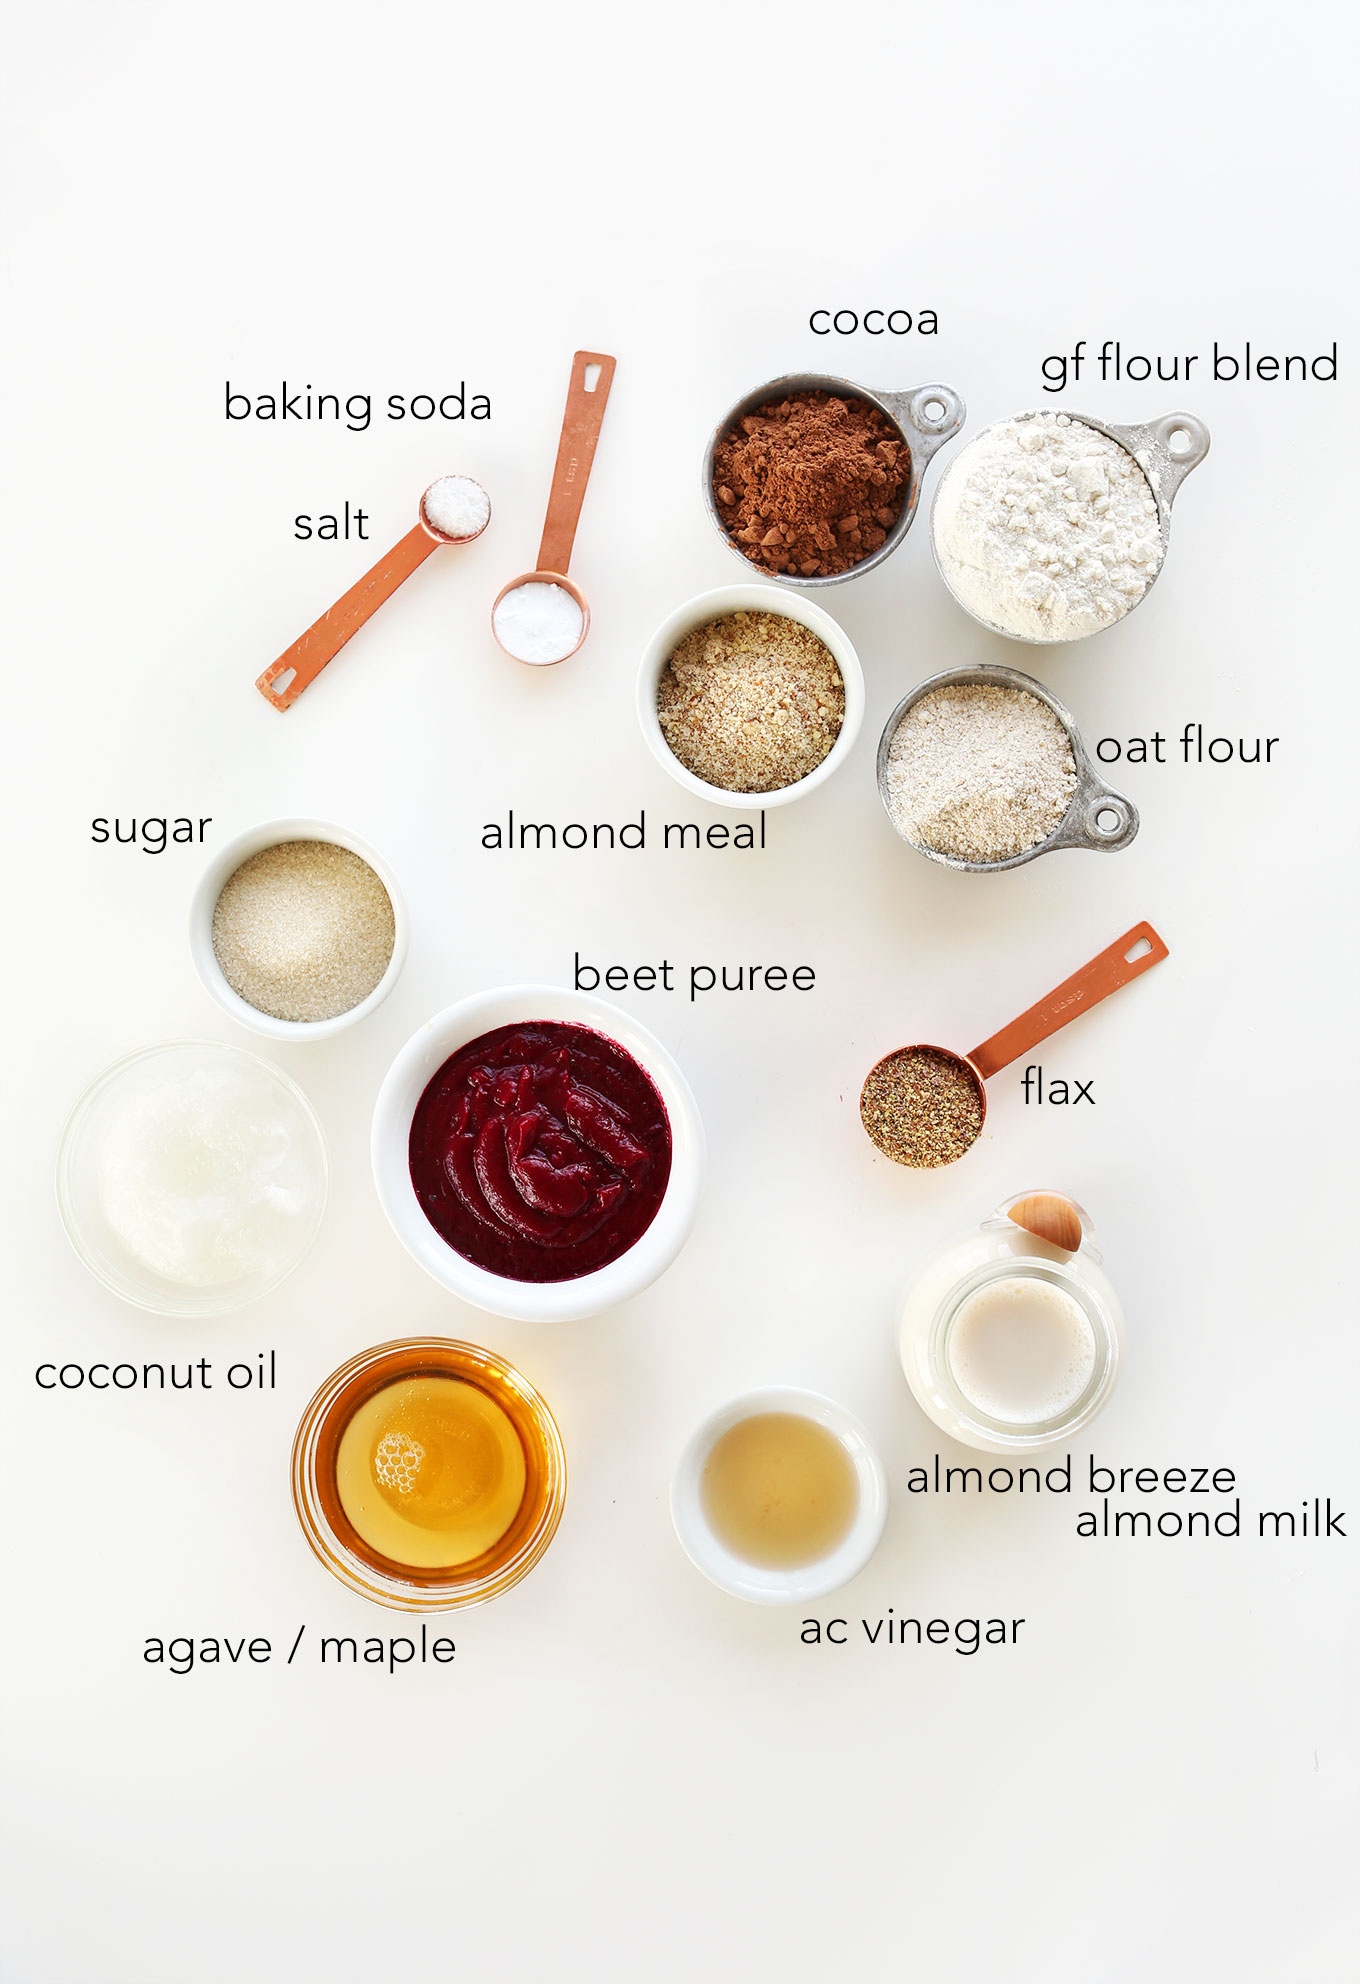 Ingredients for making our delicious Vegan Gluten-Free Chocolate Cupcakes recipe